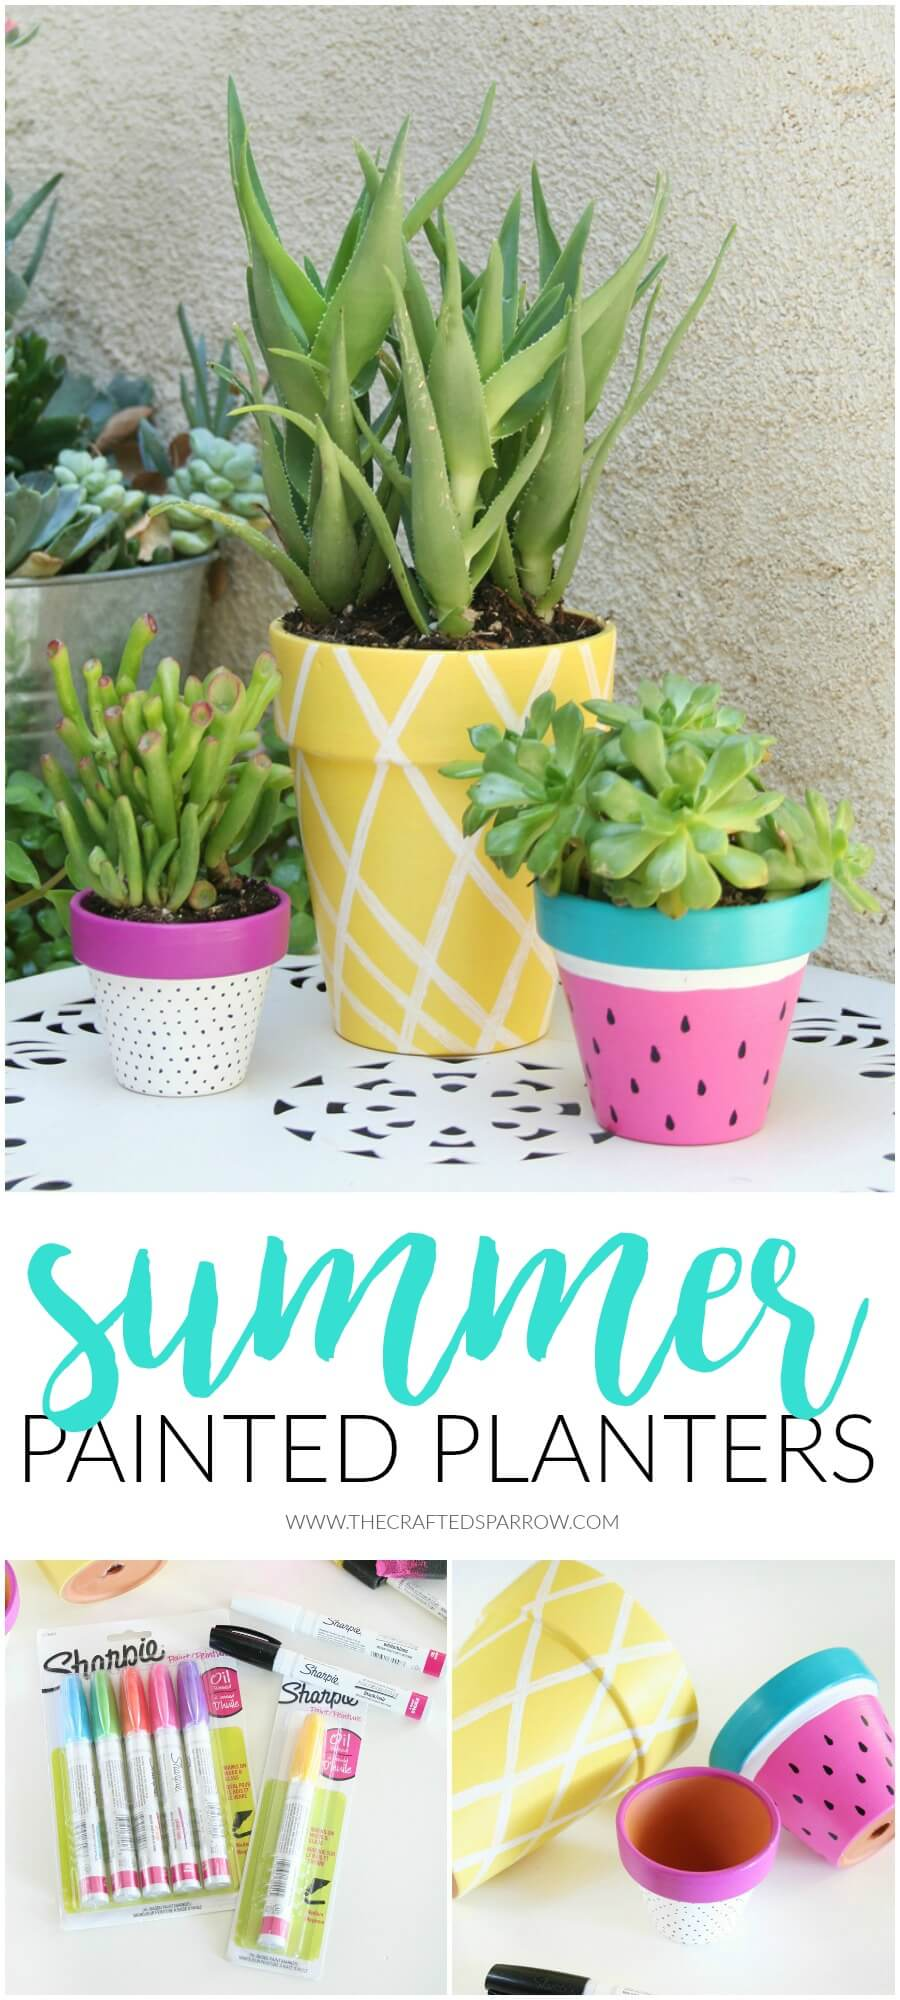 Painted Pots in Fruit and Pastels | DIY Painted Garden Decoration Ideas